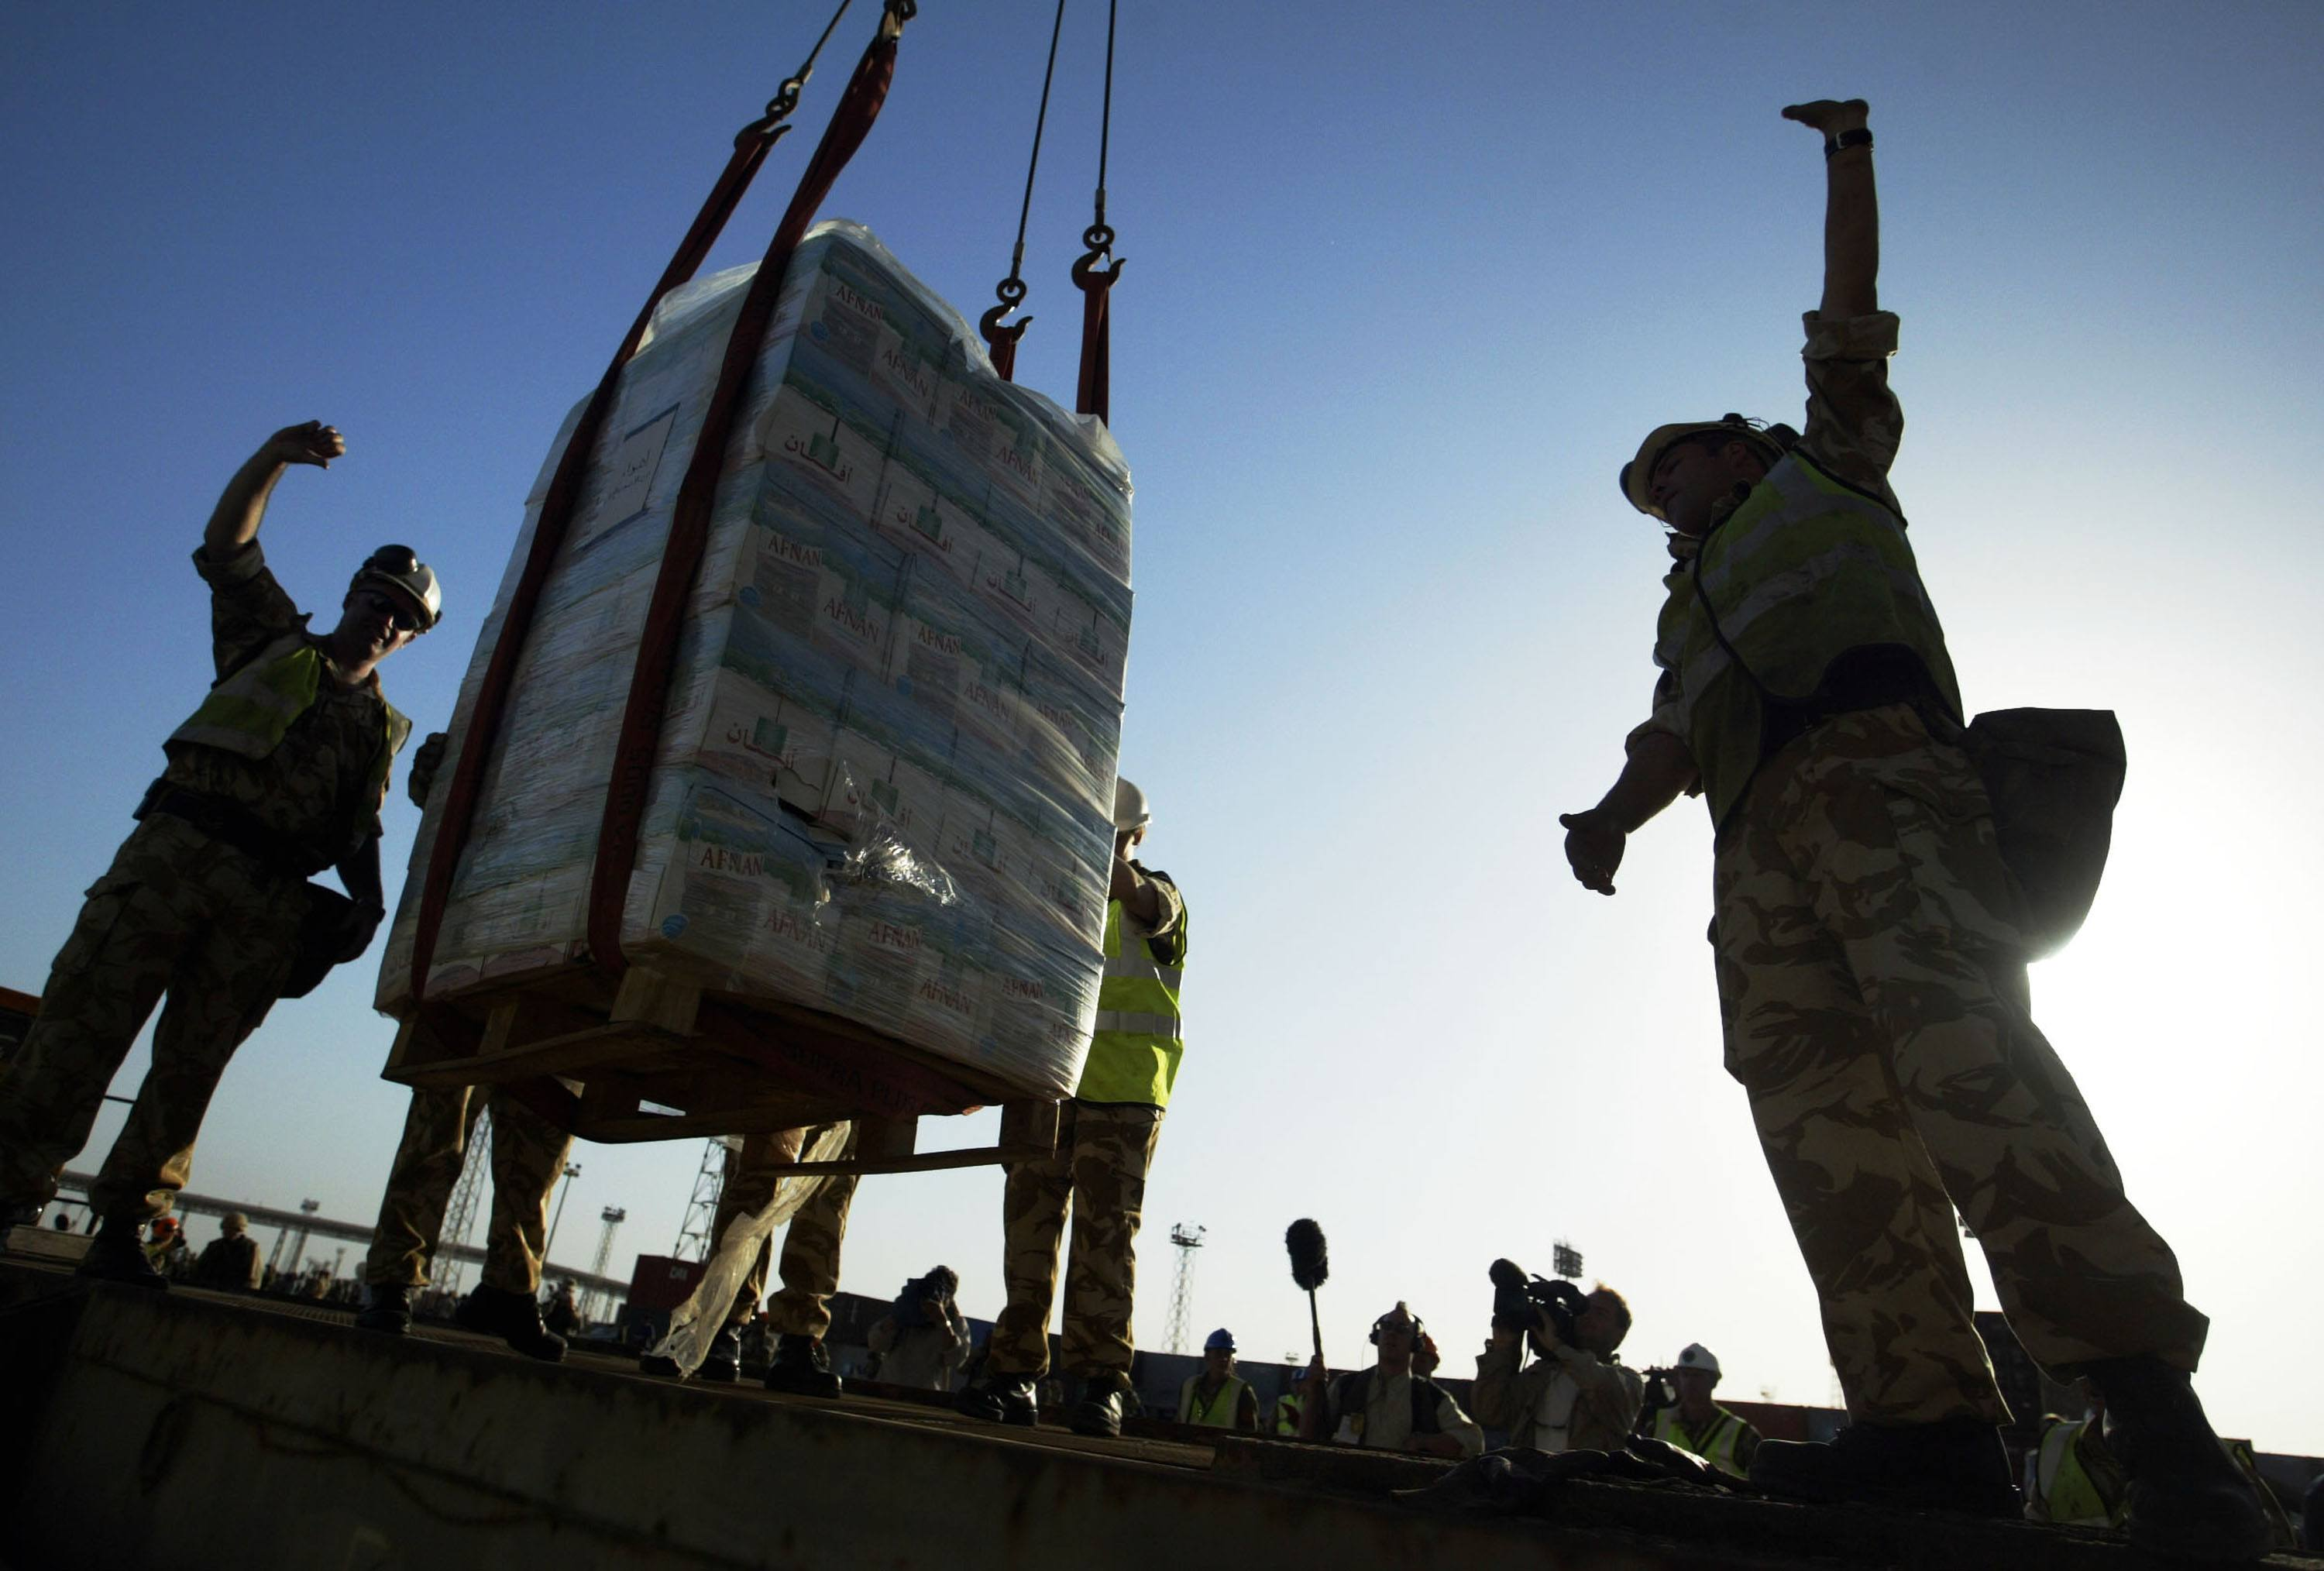 A pallet of fresh bottled water is lowered onto a dock in Iraq